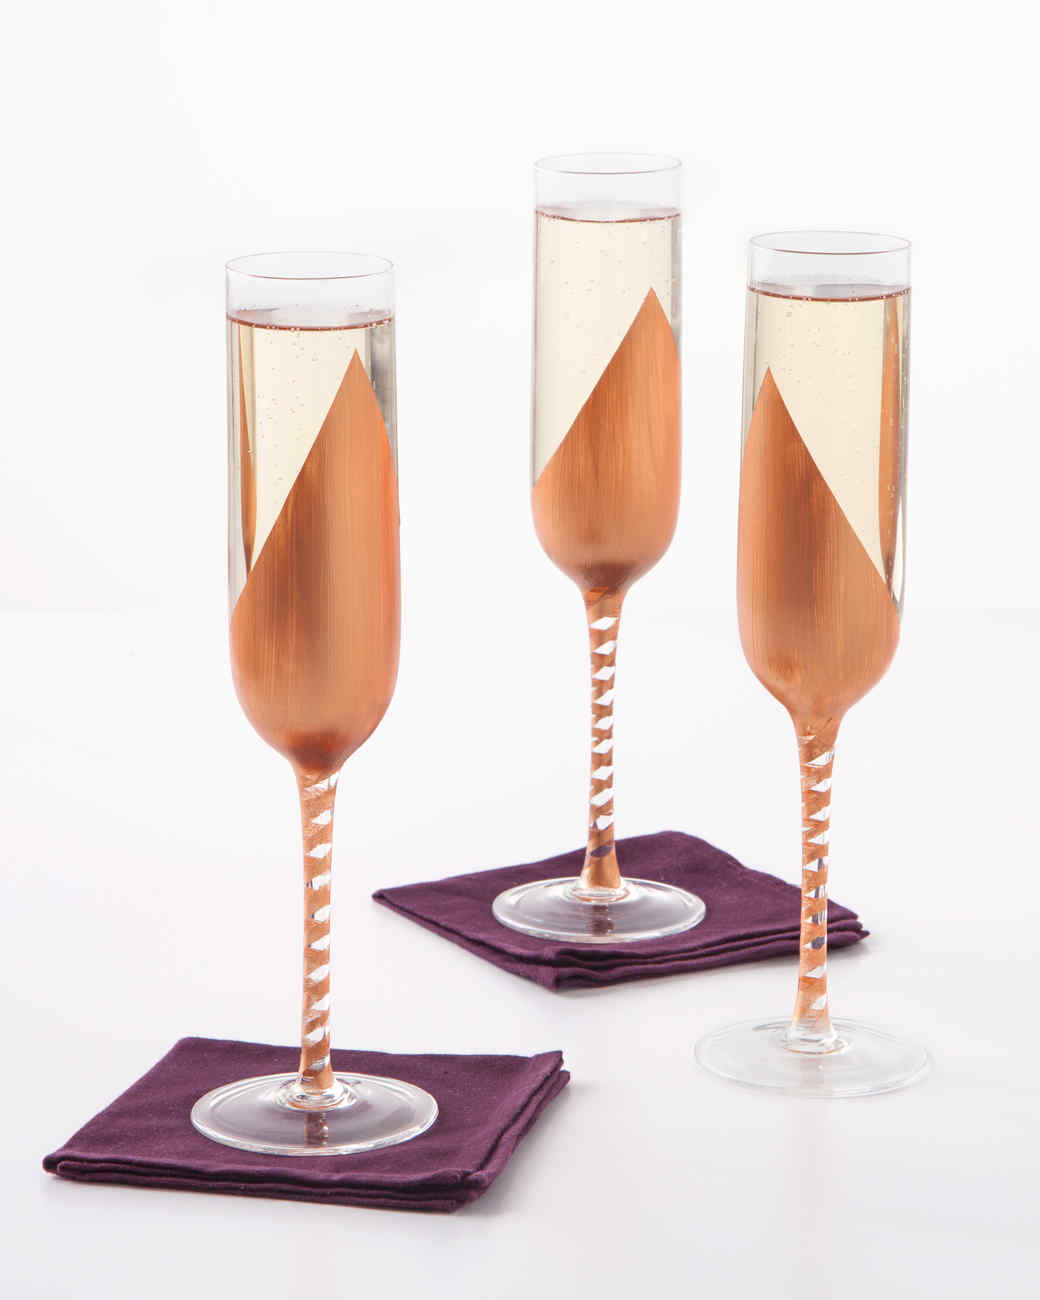 bronze-champagne-glasses-mad-about-color-0043-d111691.jpg